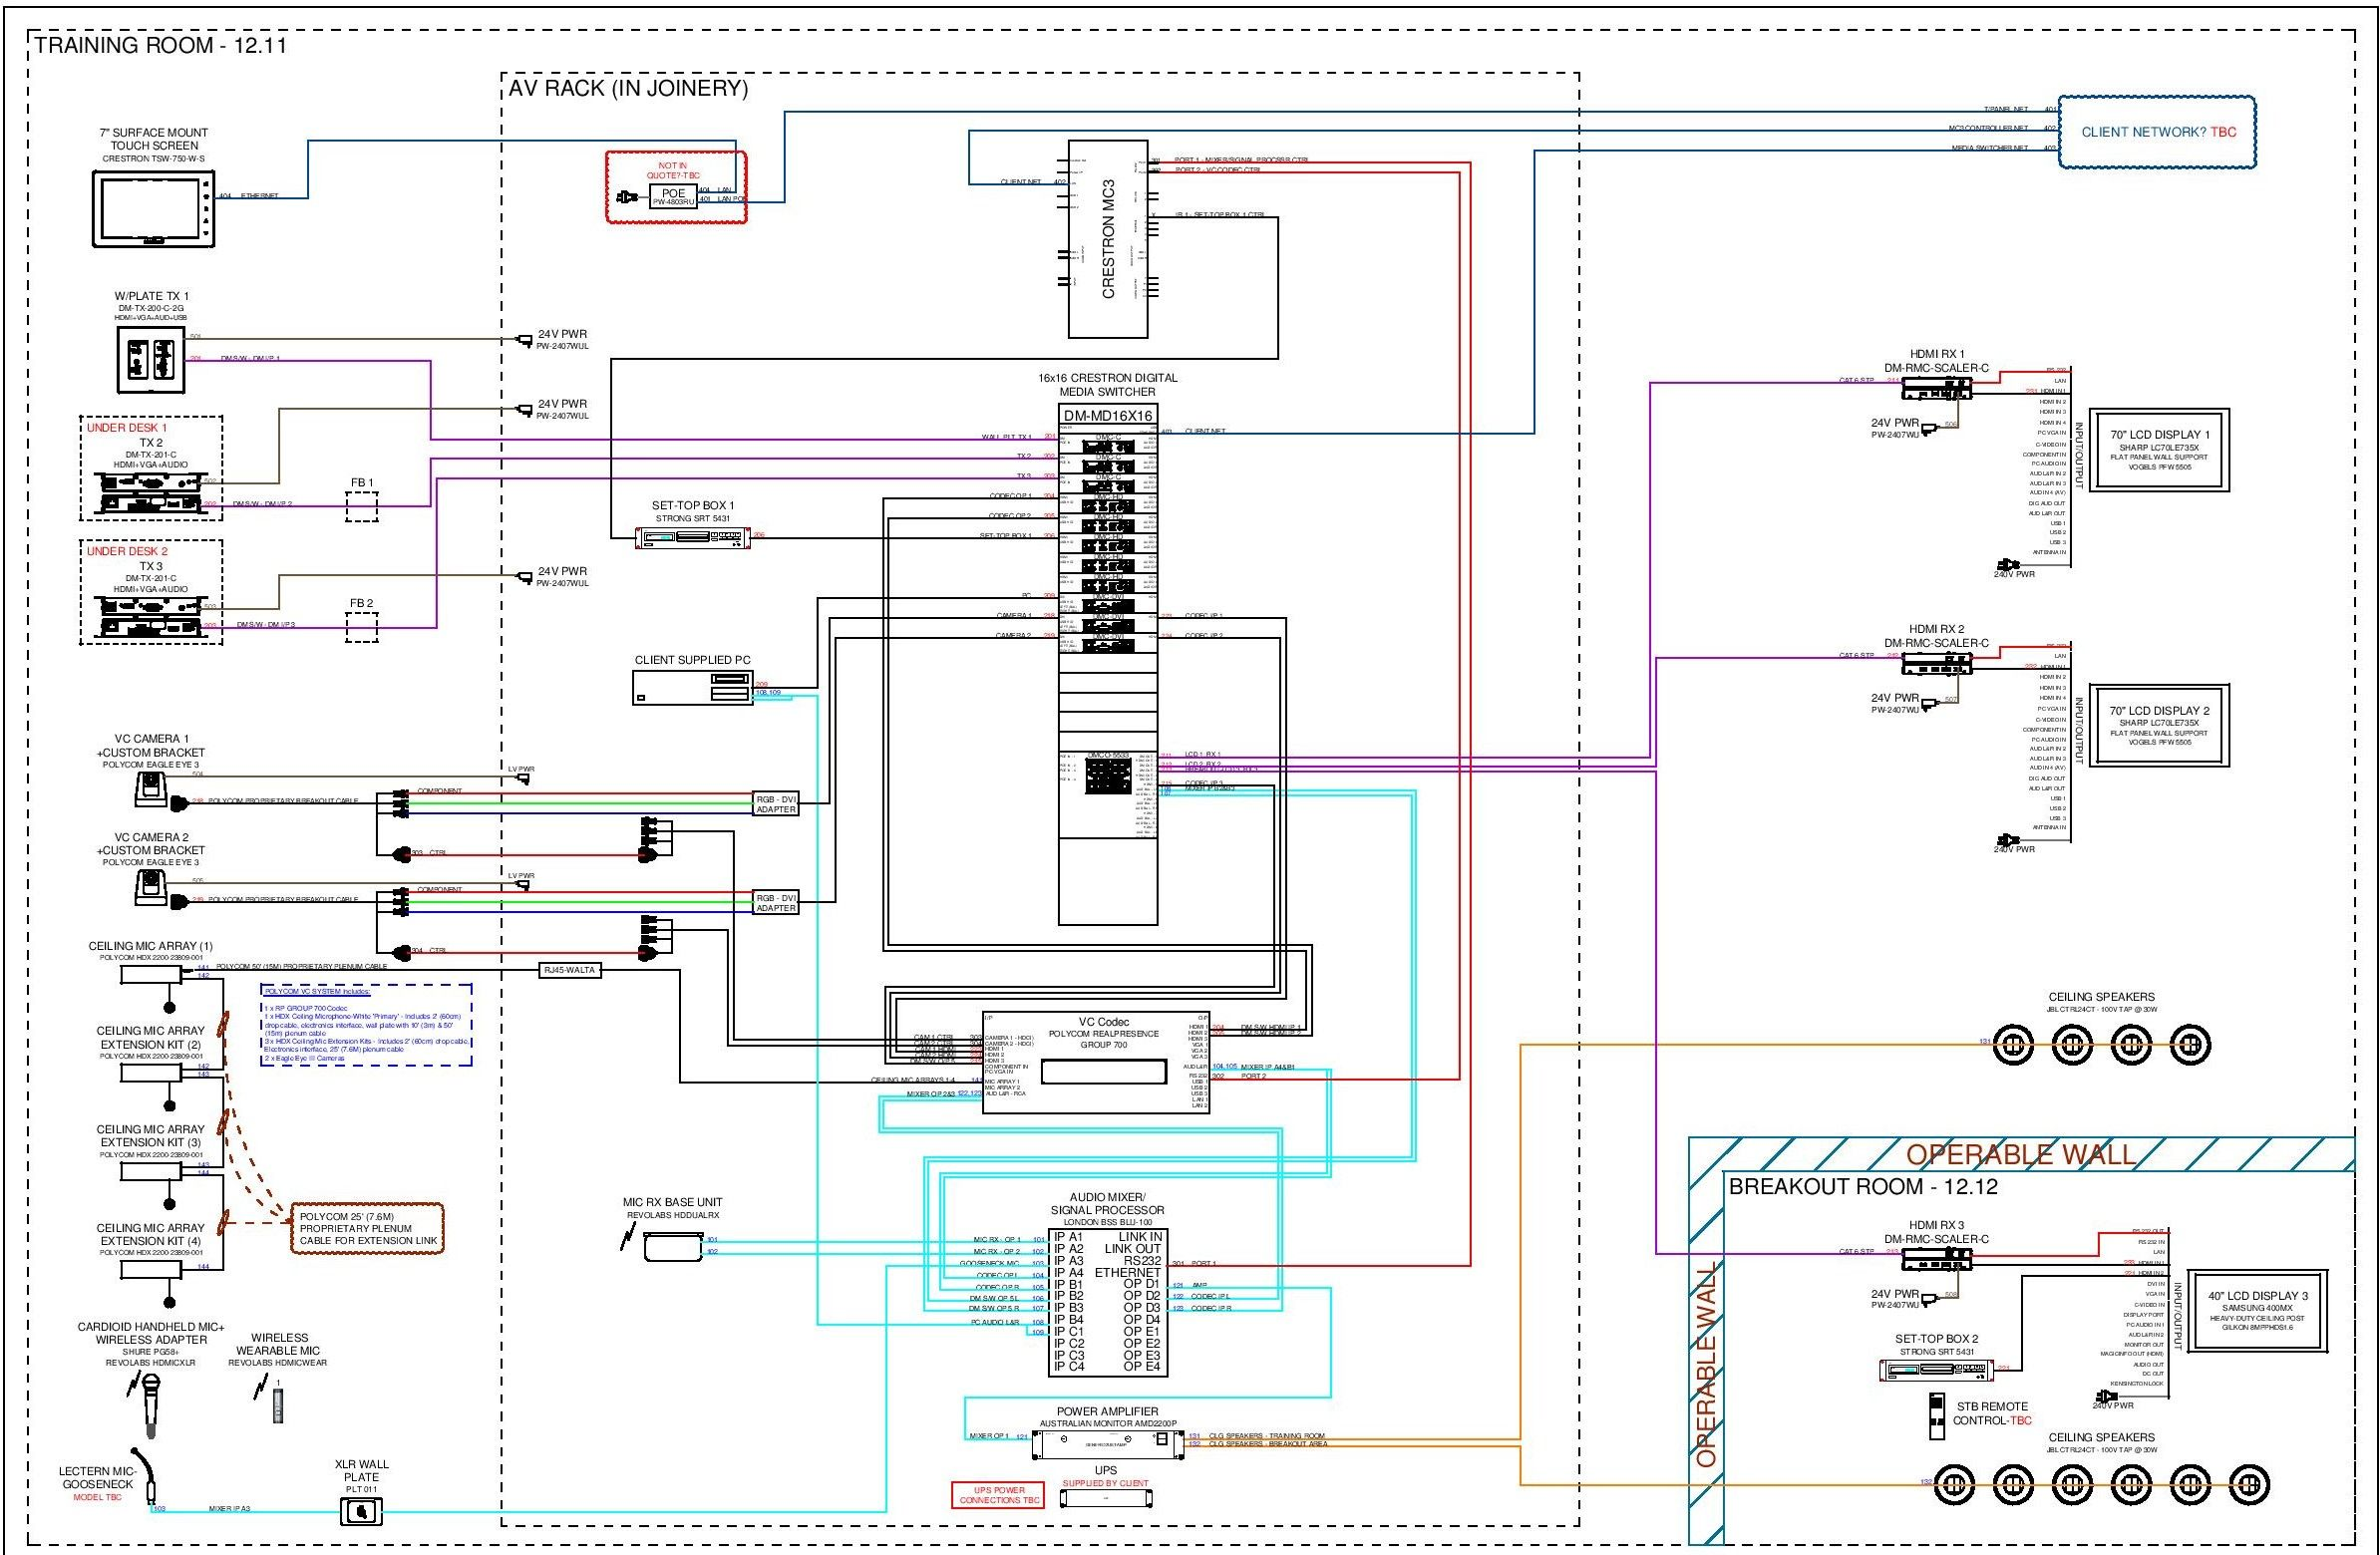 av wiring schematic training room system with operable walls